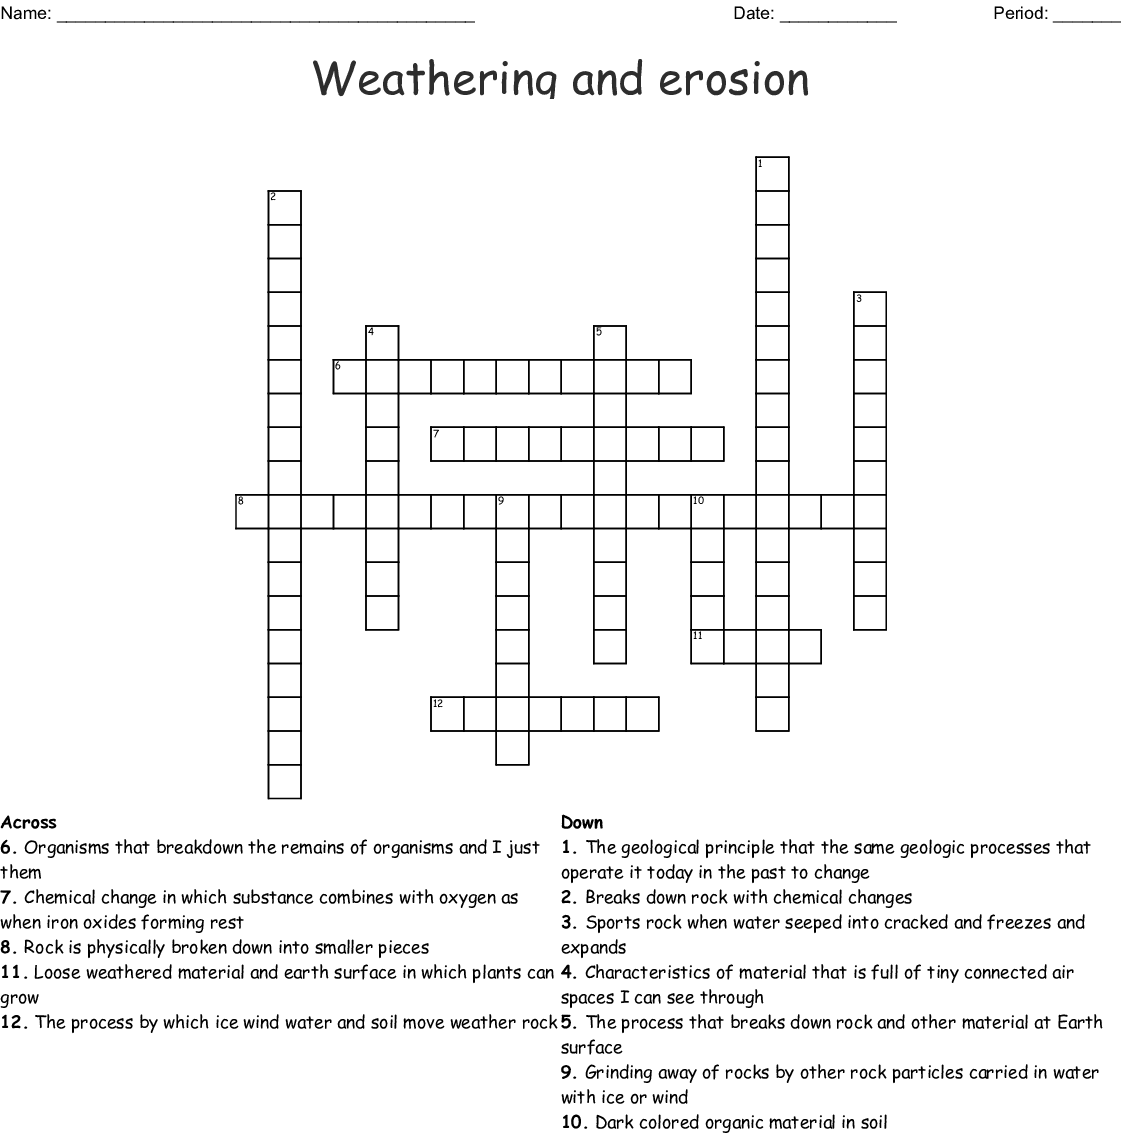 Crossword Puzzle Weathering And Erosion Worksheets Pdf